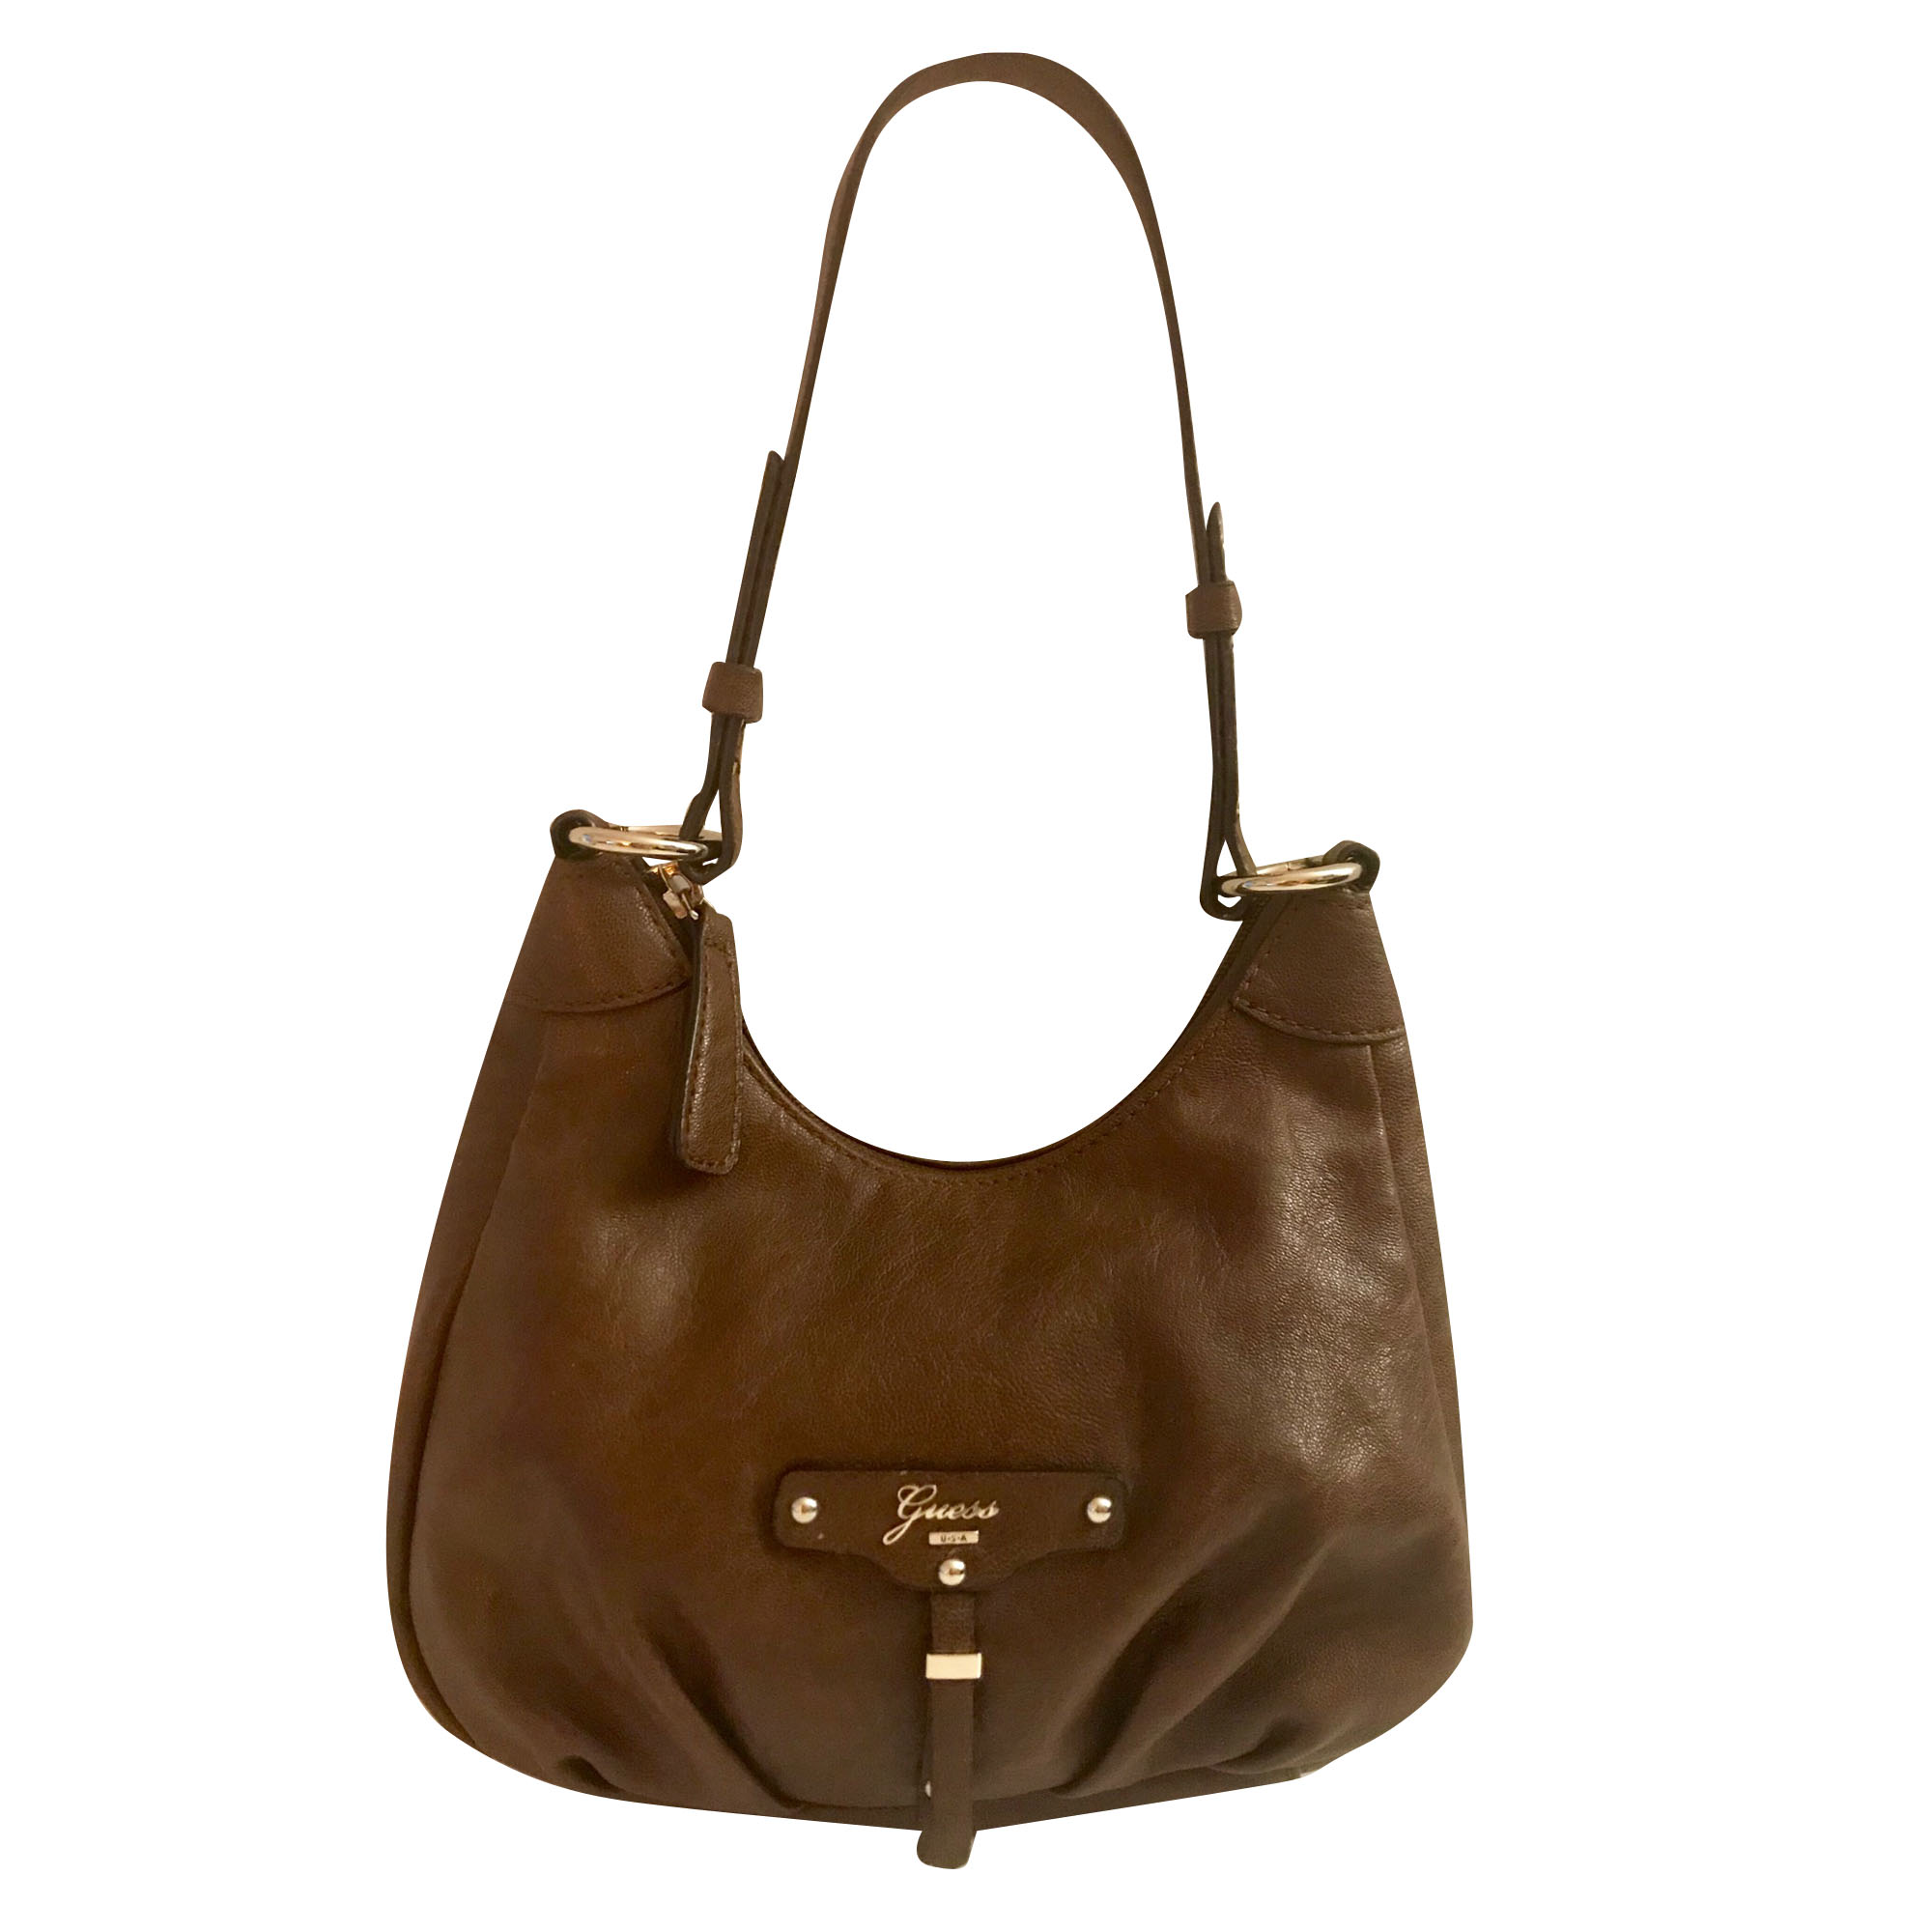 En Marron Cuir Guess Main Sac À 7317560 iXkZuPO